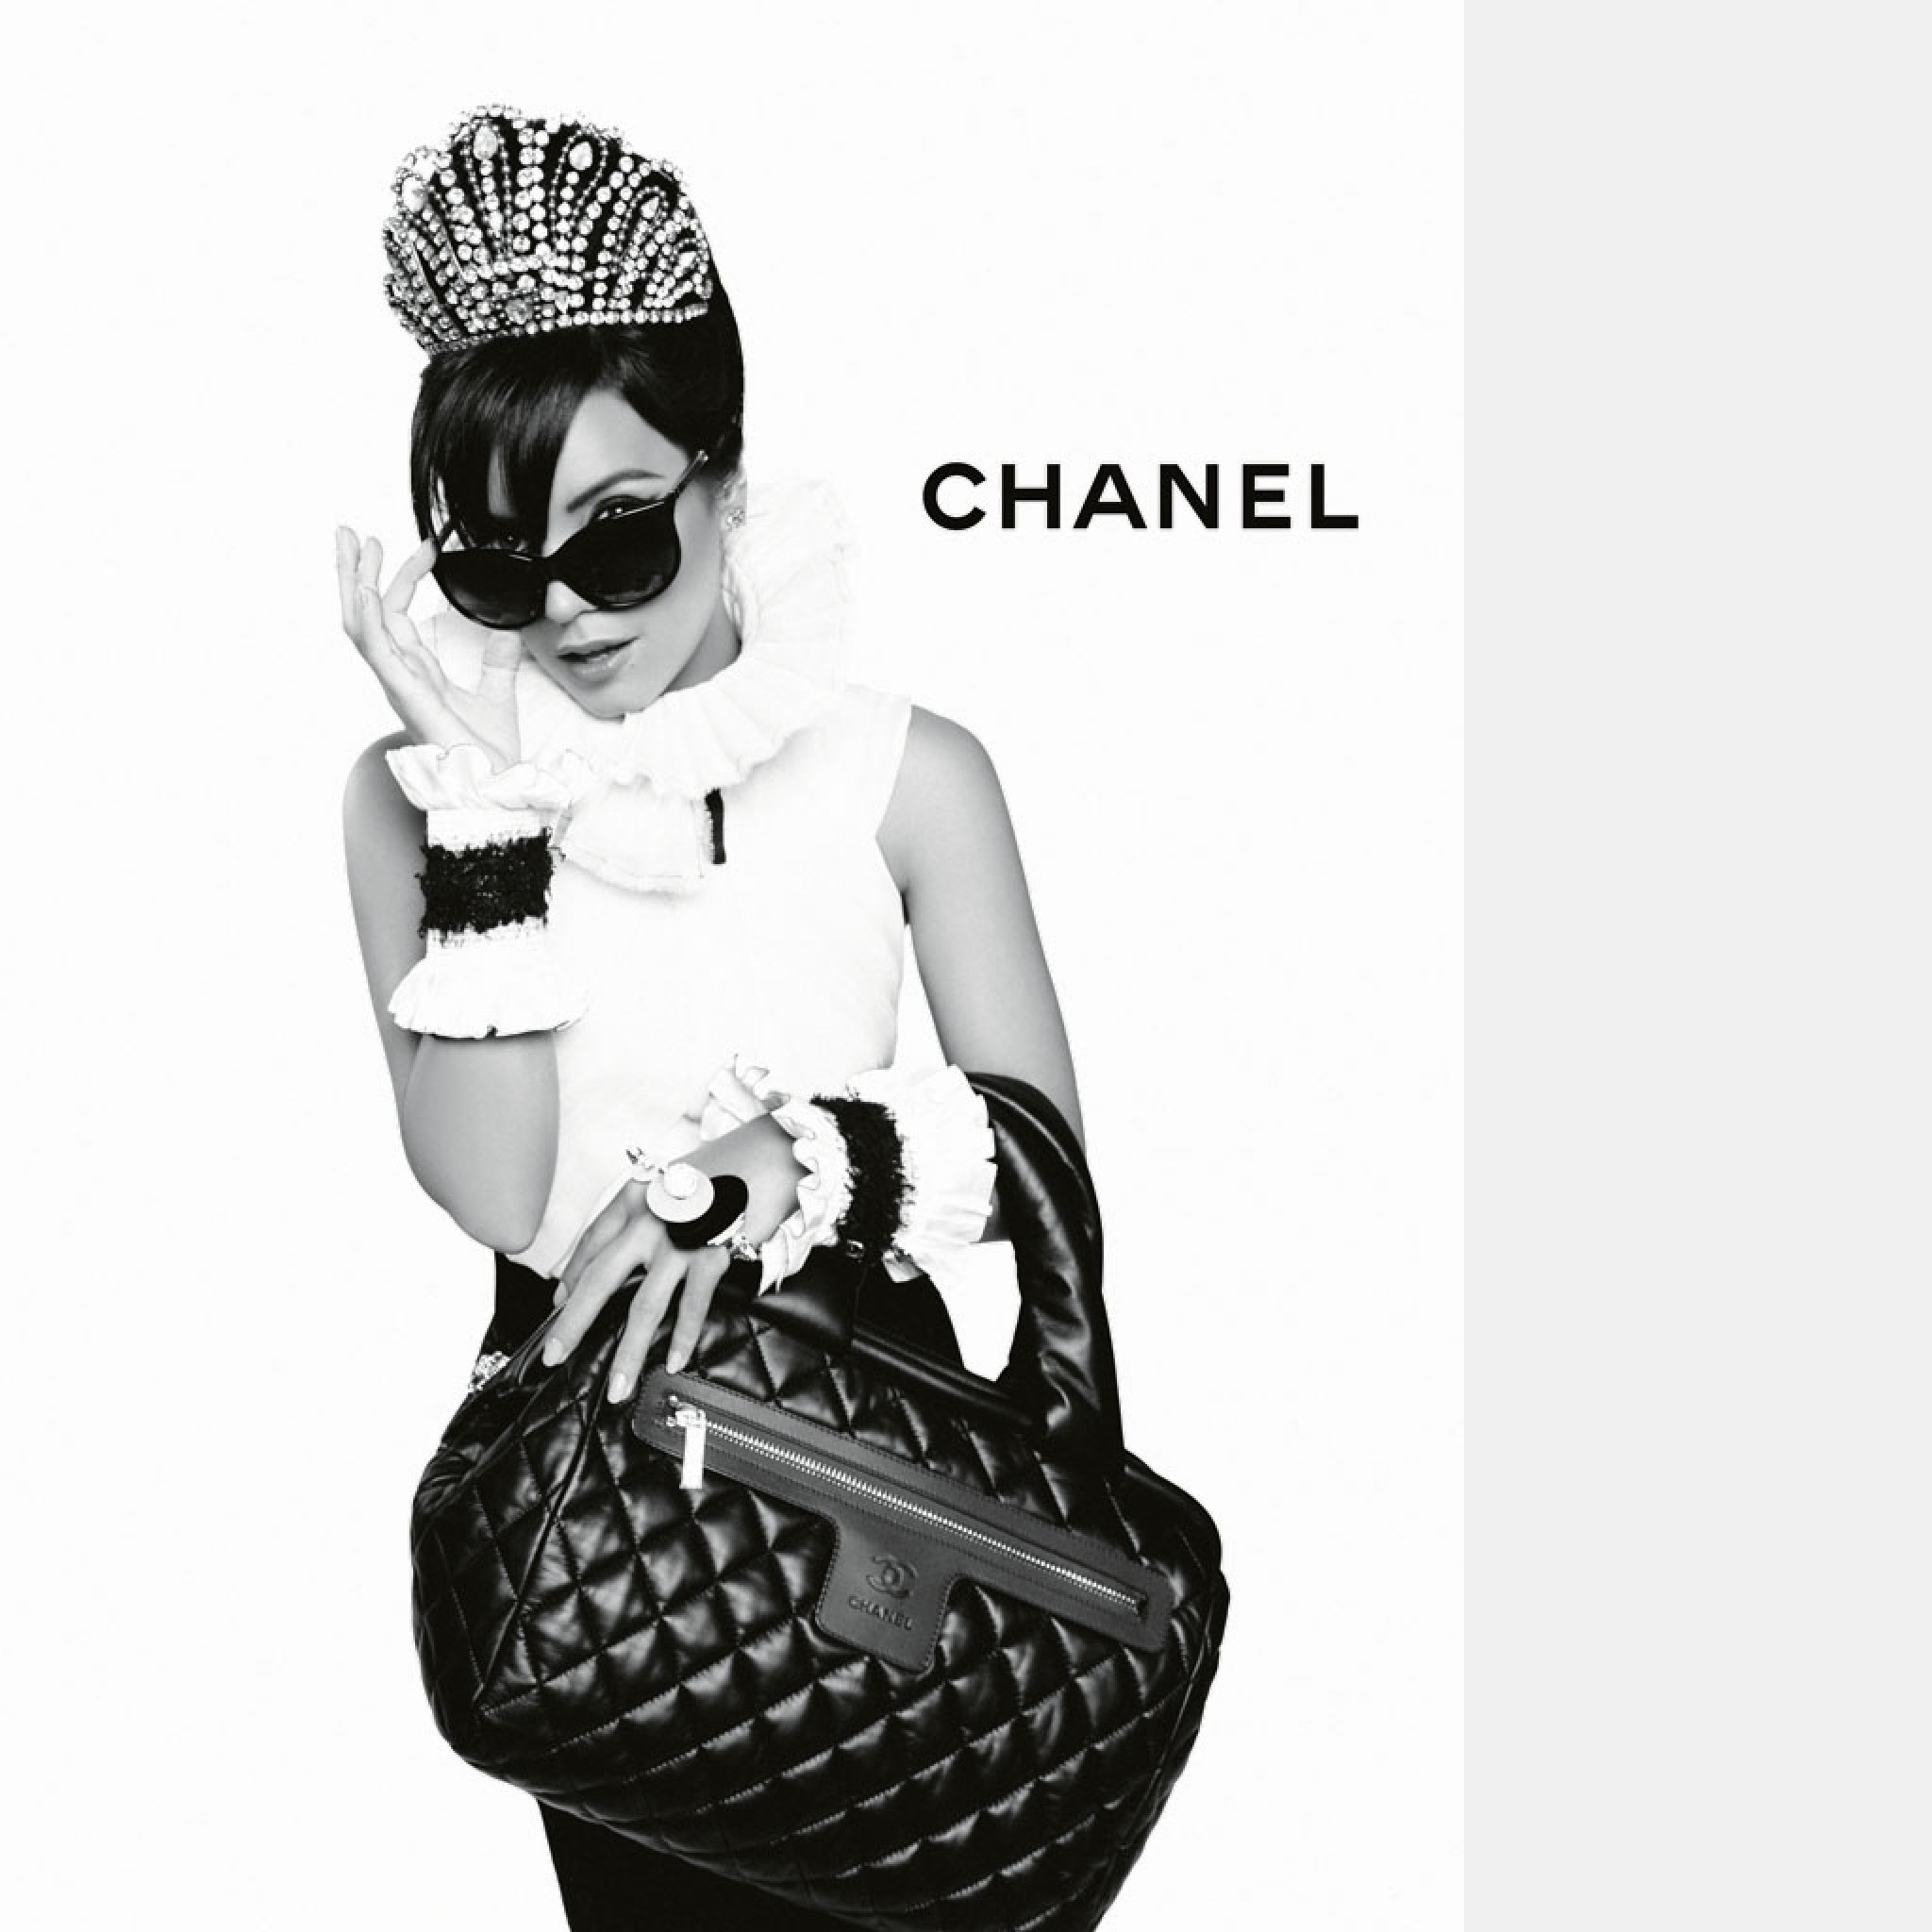 2048x2048 Preview wallpaper chanel, lily allen, girl, bag, sunglasses, high fashion